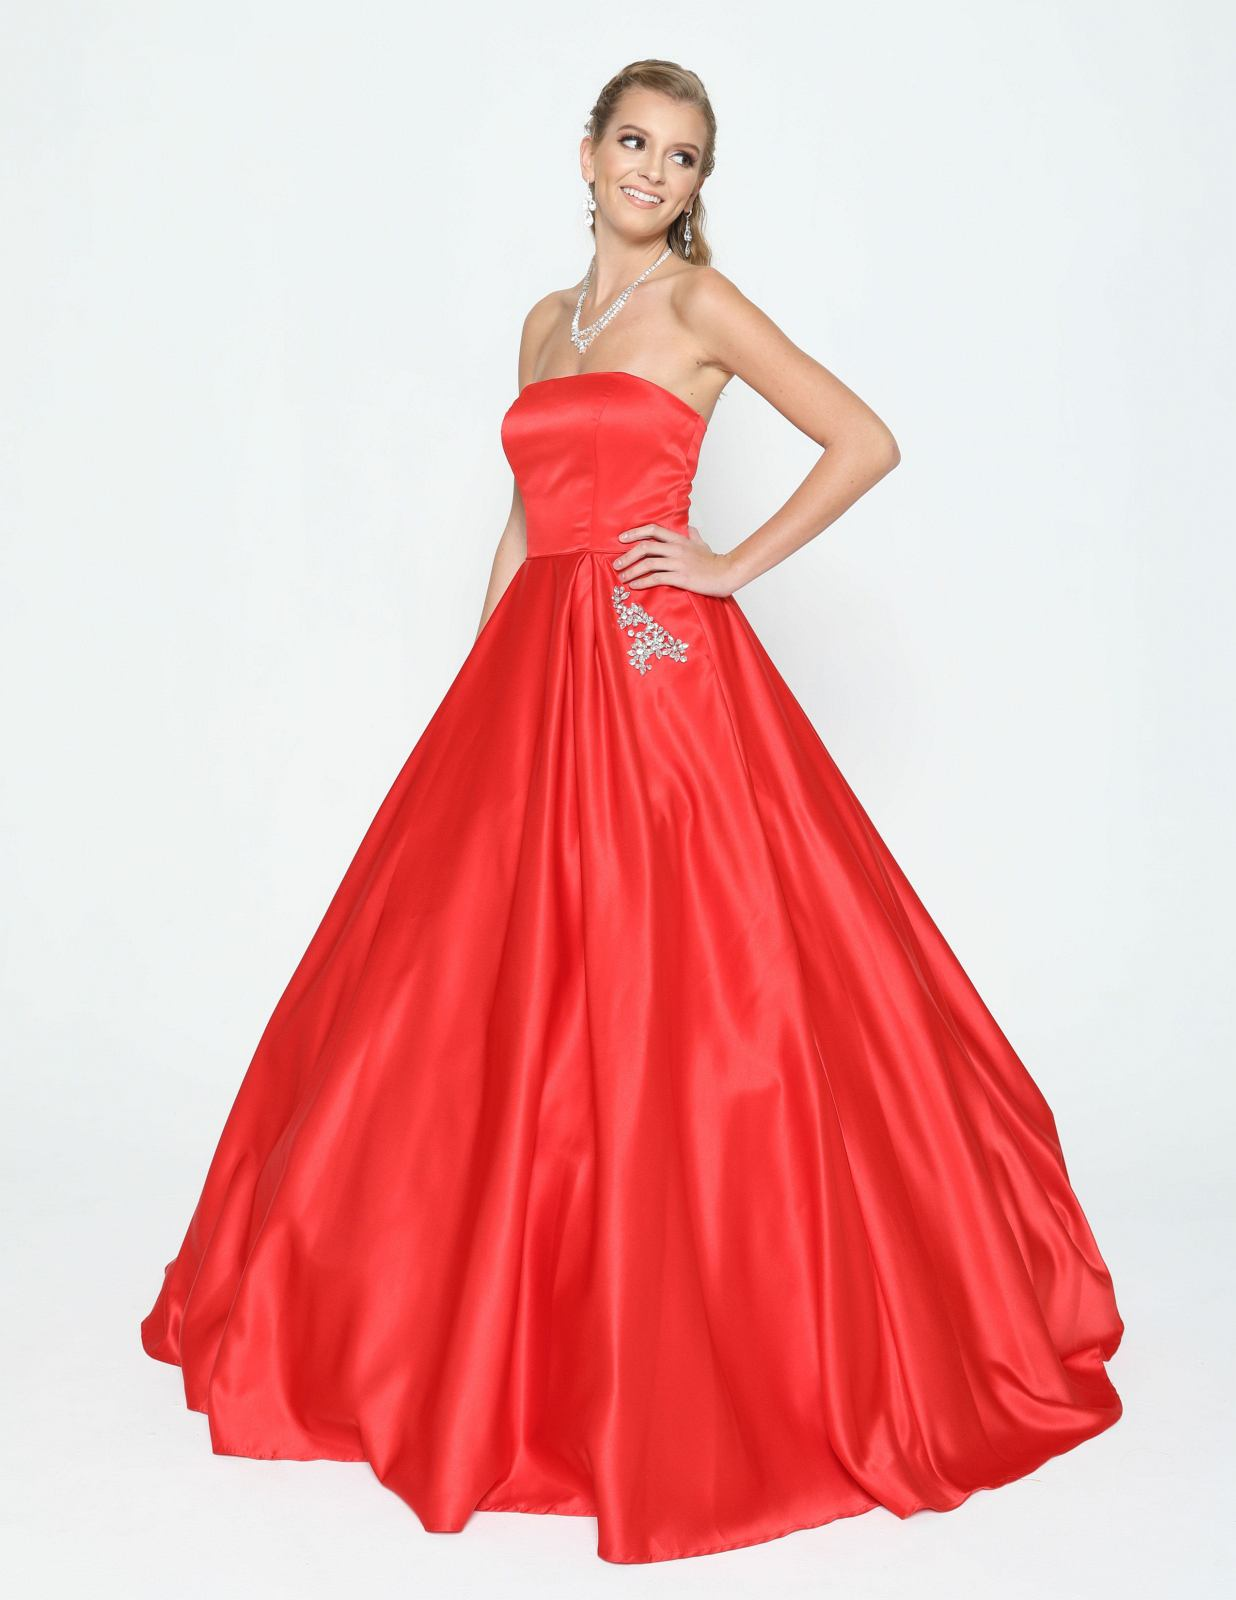 Juliet 372 Red Strapless Prom Gown with Beaded Pockets ...